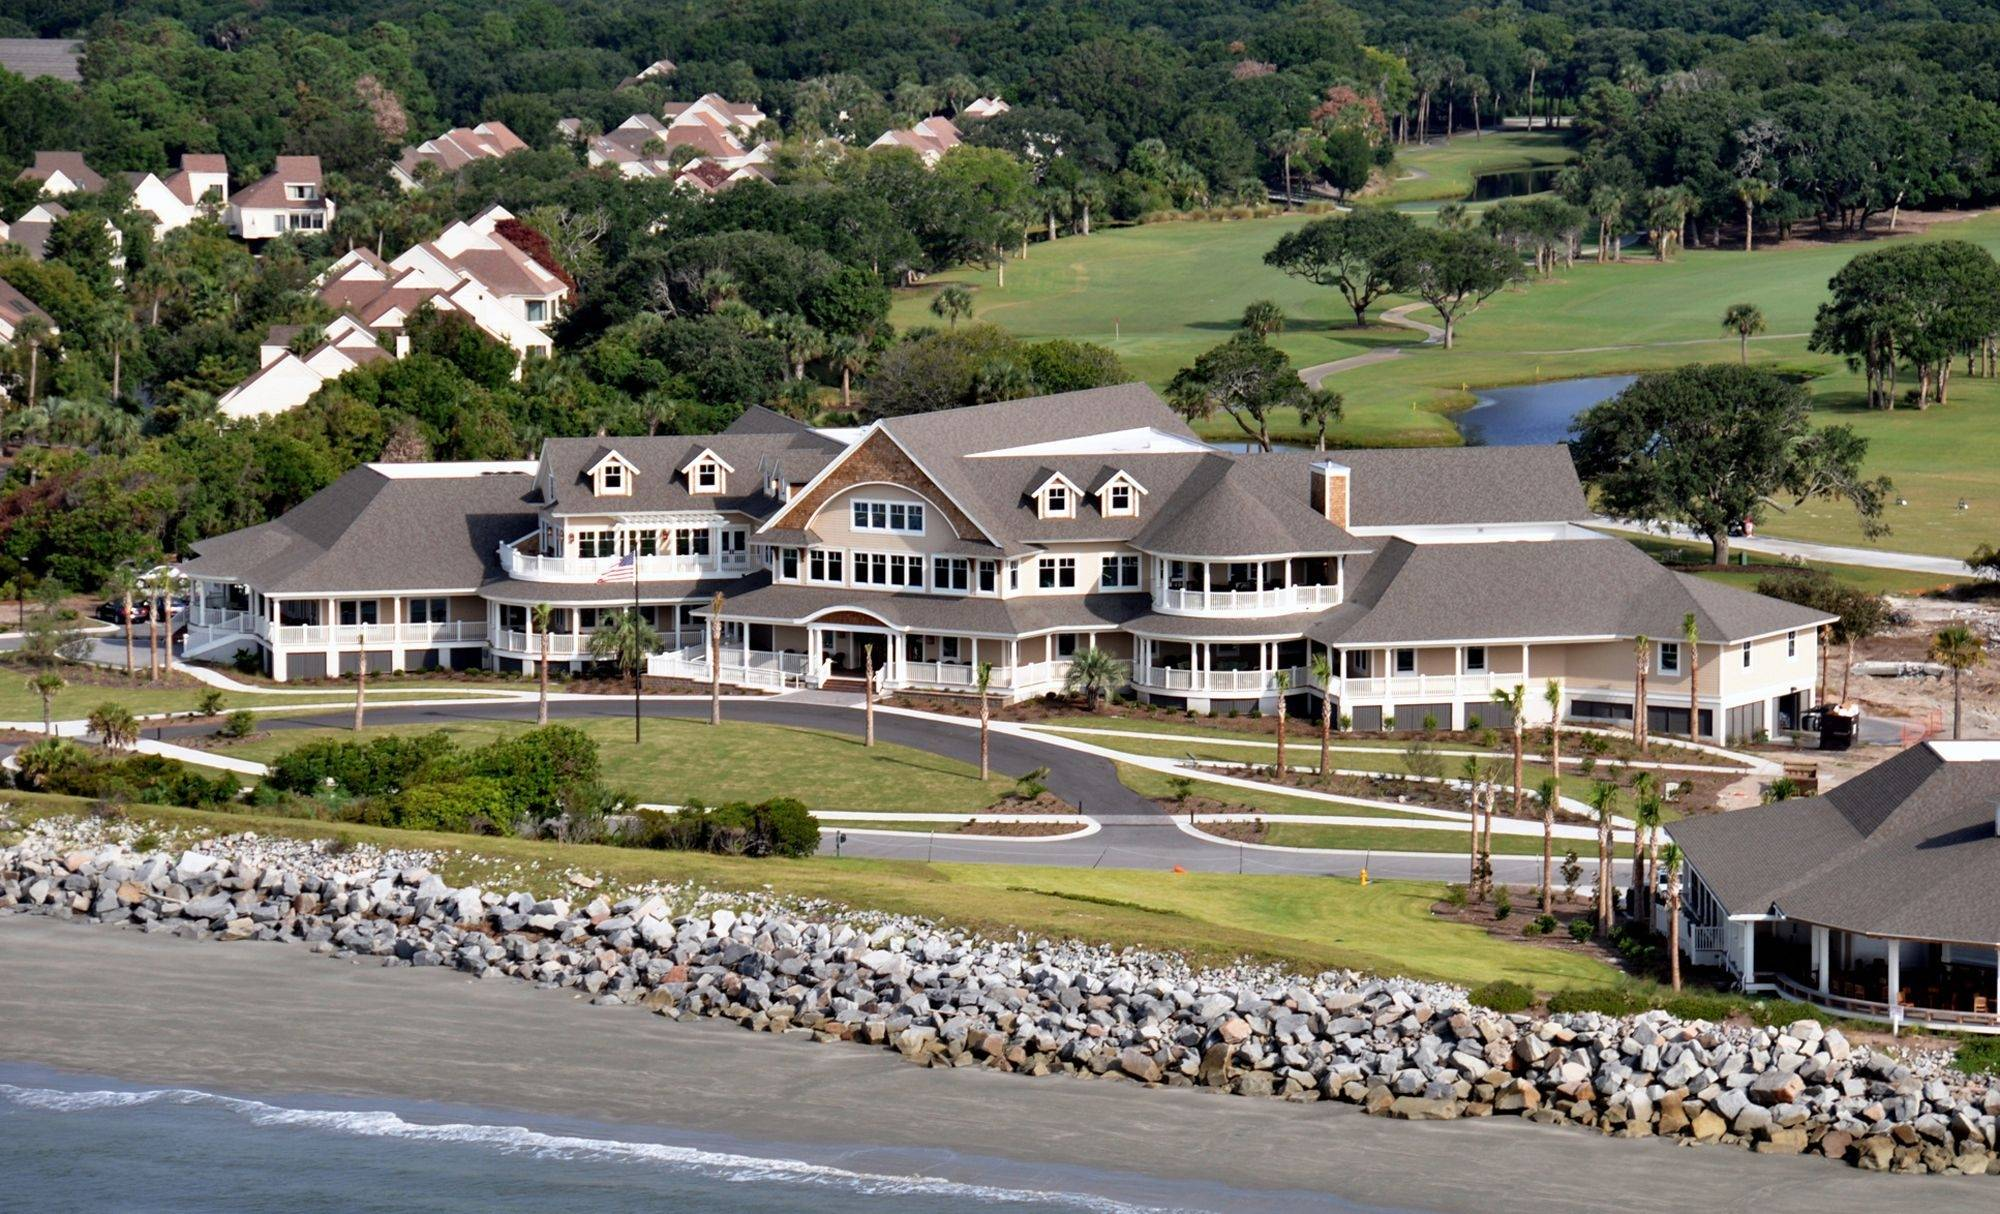 The clubhouse at Seabrook Island, S.C., where retired Palatine schools Superintendent John Conyers built a home.